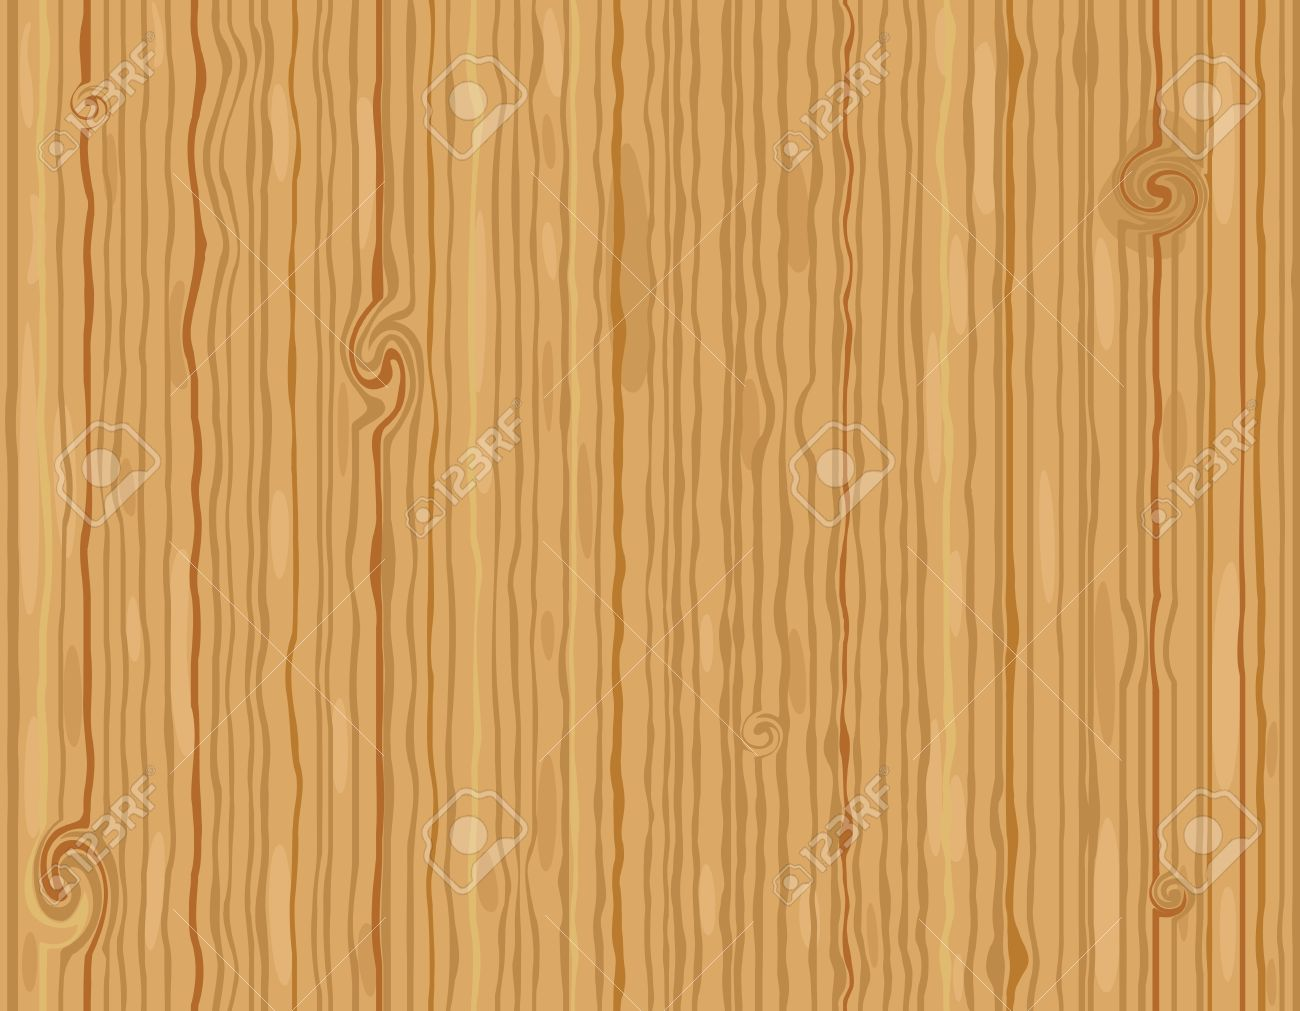 Background Of Wood Grain Texture Vector File Saved As Eps Ai8